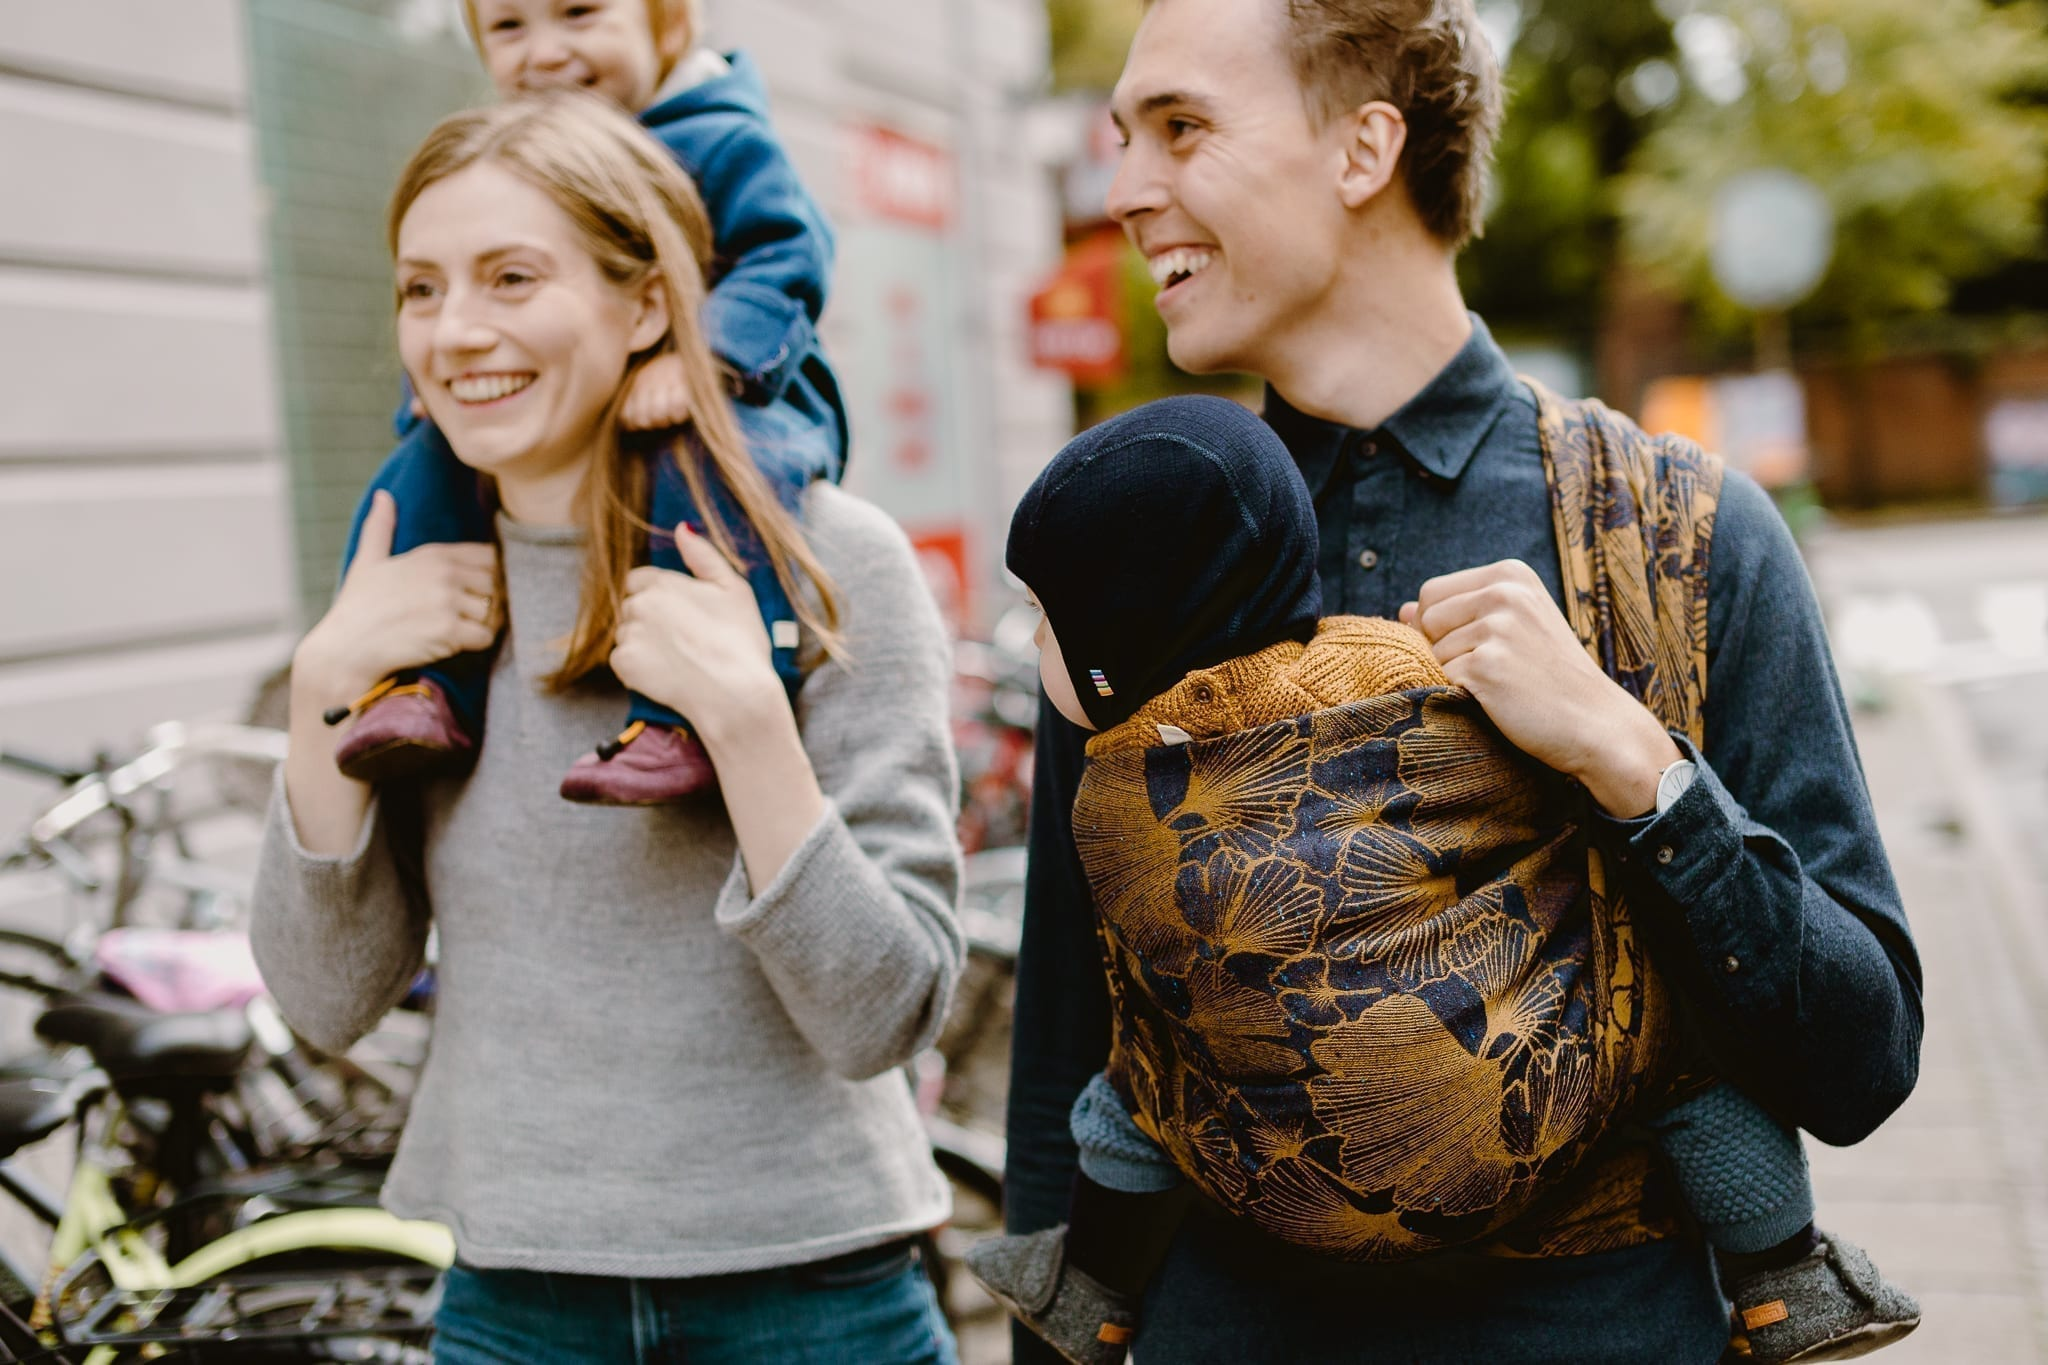 A man and a woman walking down the street. The woman is carrying her son on her shoulders and the man is wearing his baby in a baby sling by Levate.